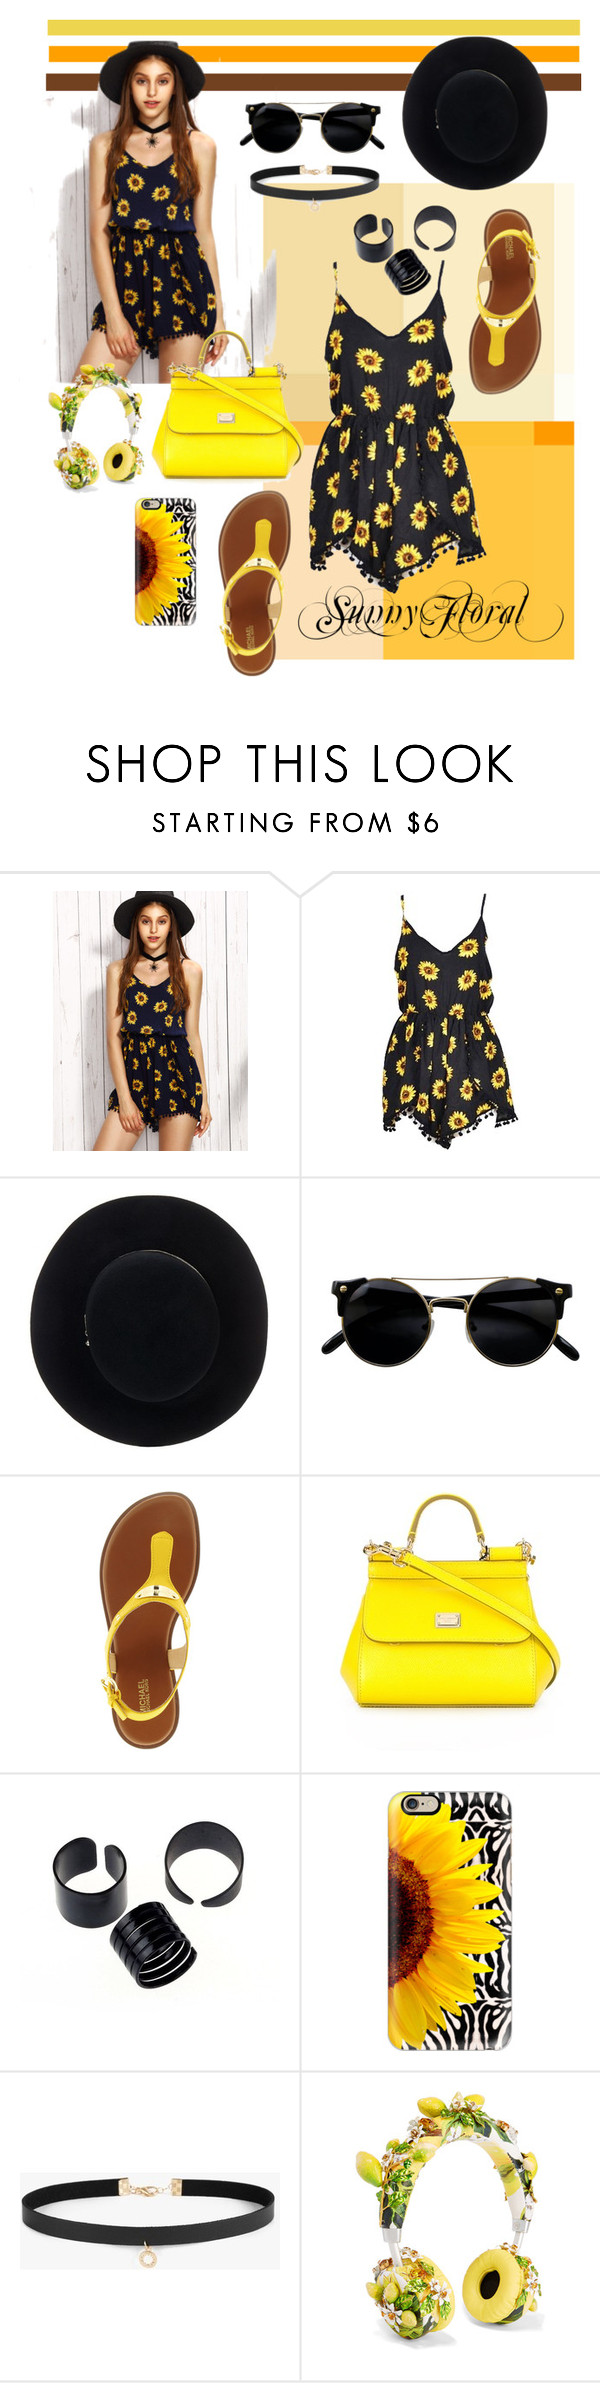 """Sunny Floral"" by tainted-scars ❤ liked on Polyvore featuring Eugenia Kim, Michael Kors, Dolce&Gabbana, Casetify and Azalea"